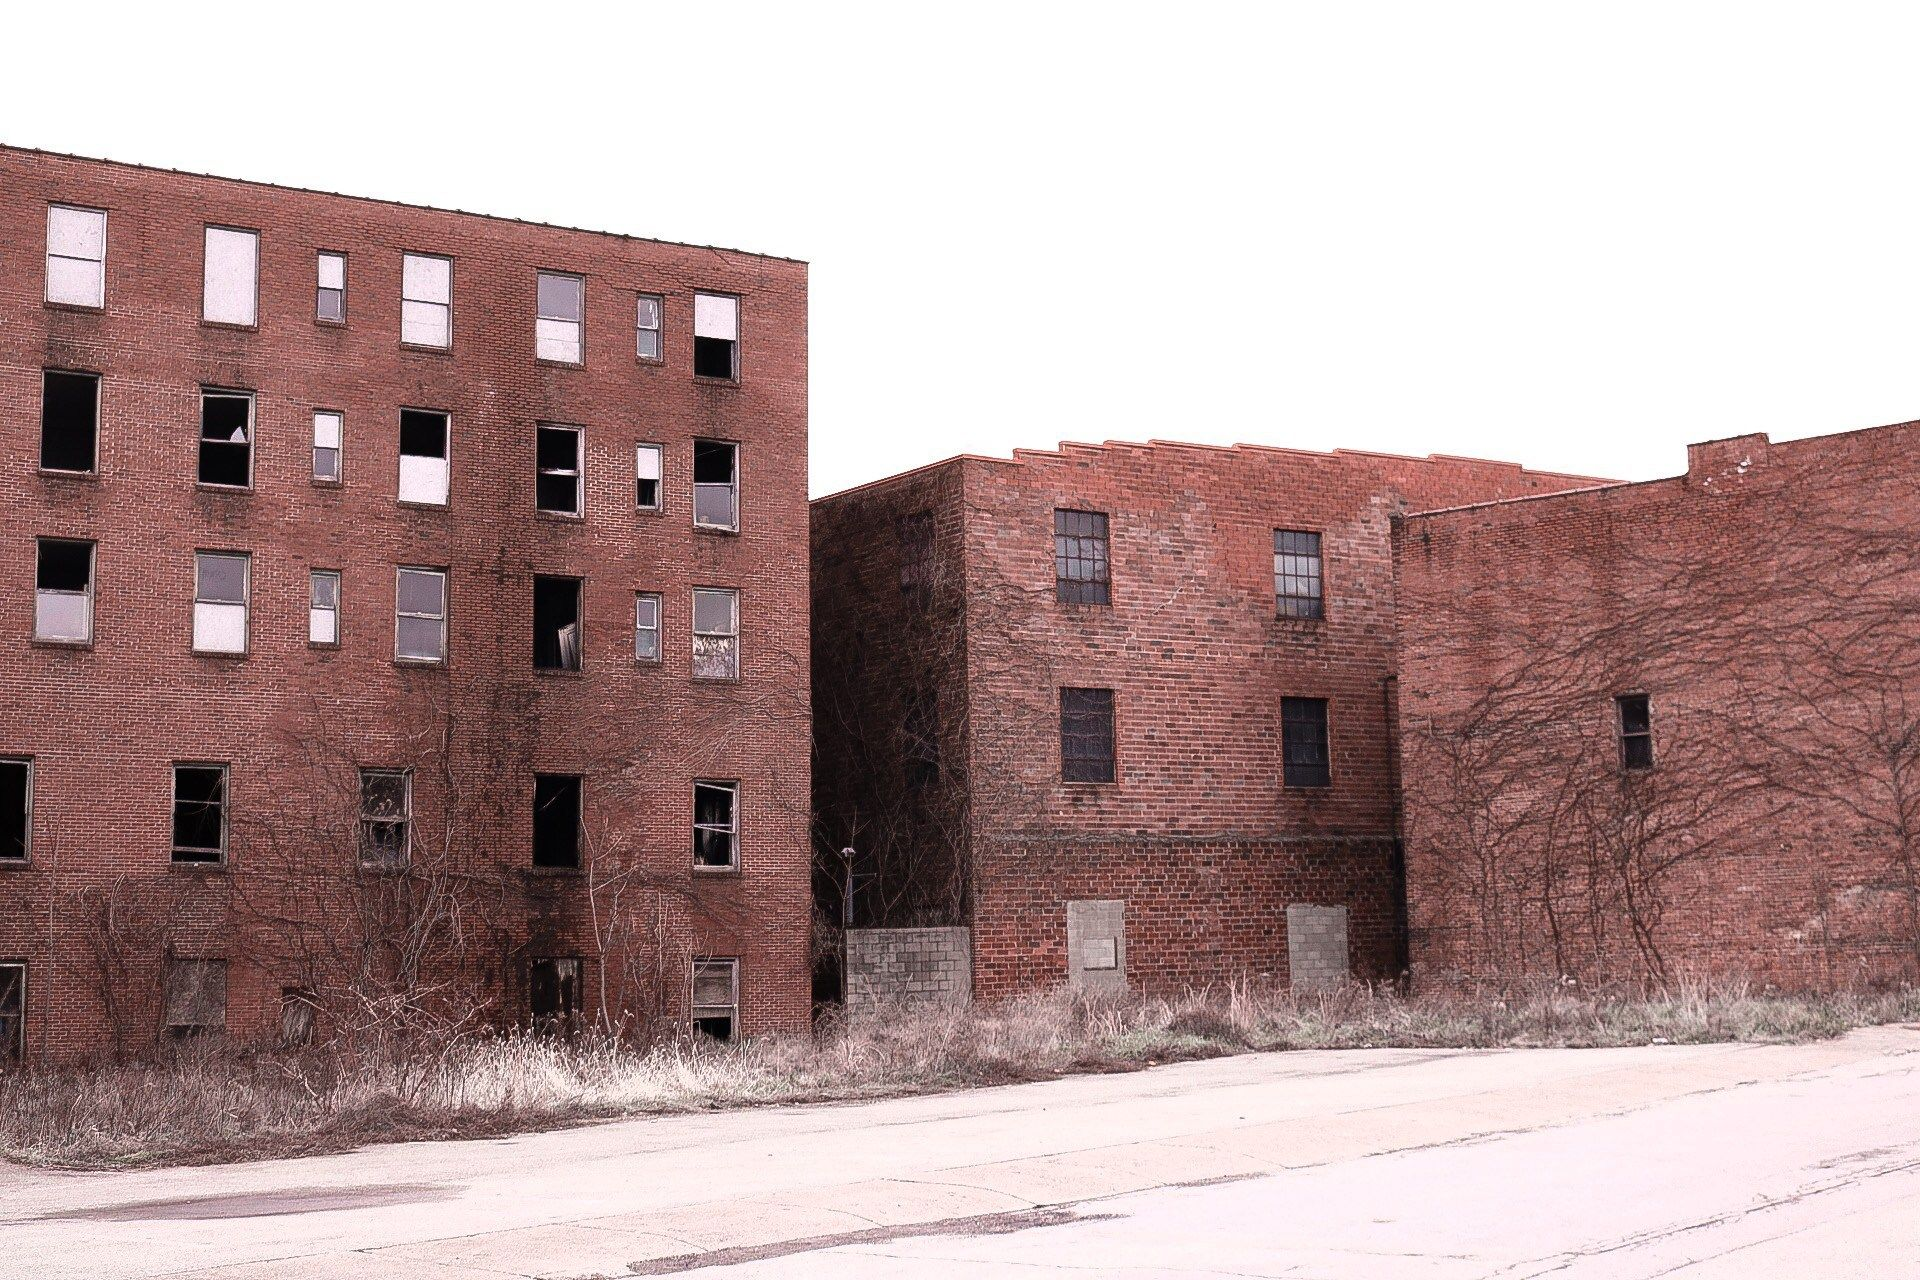 Realizing The Demise Of A Once Booming City, Brownsville, Pennsylvania  - Crystal Carder